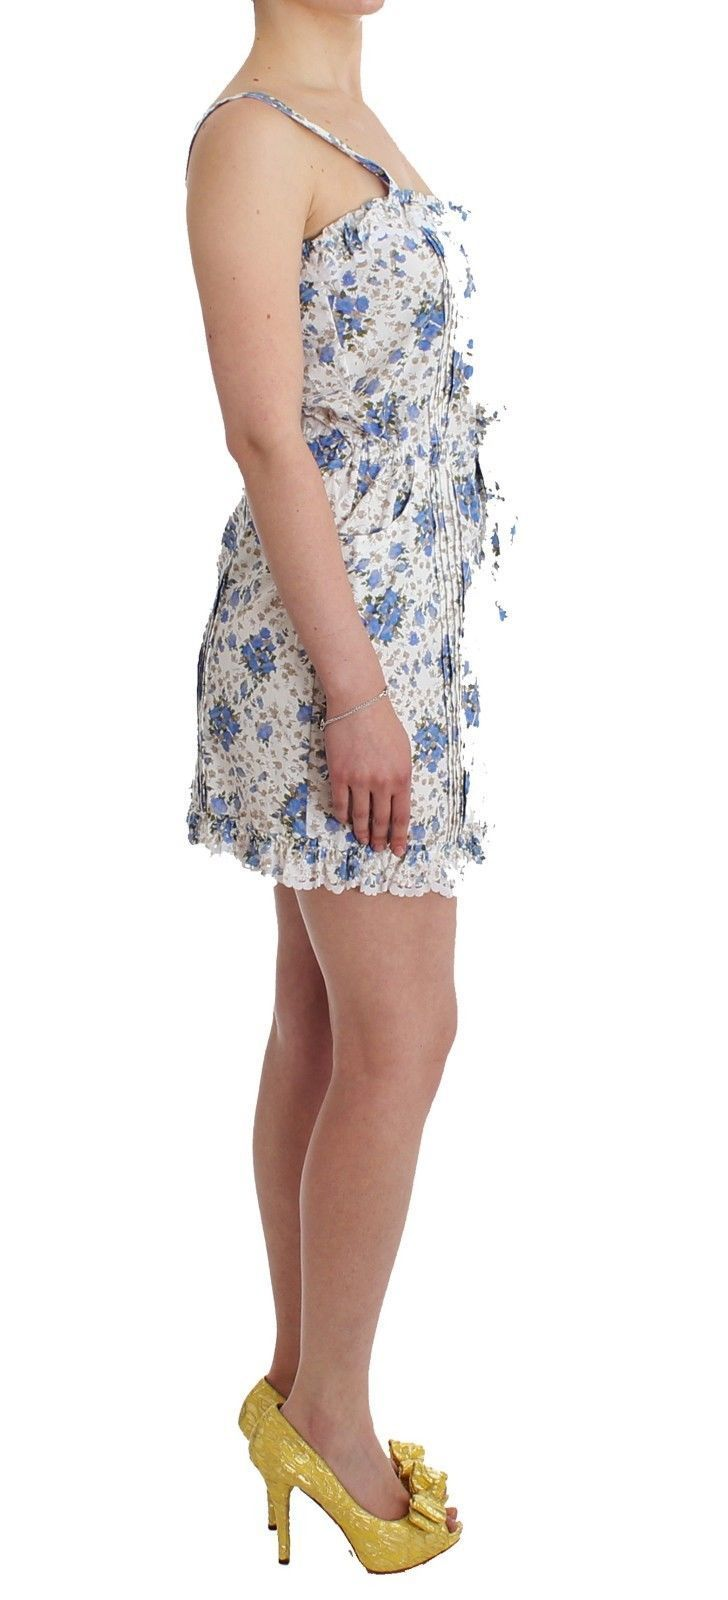 Beachwear Blue Floral Beach Mini Dress Short